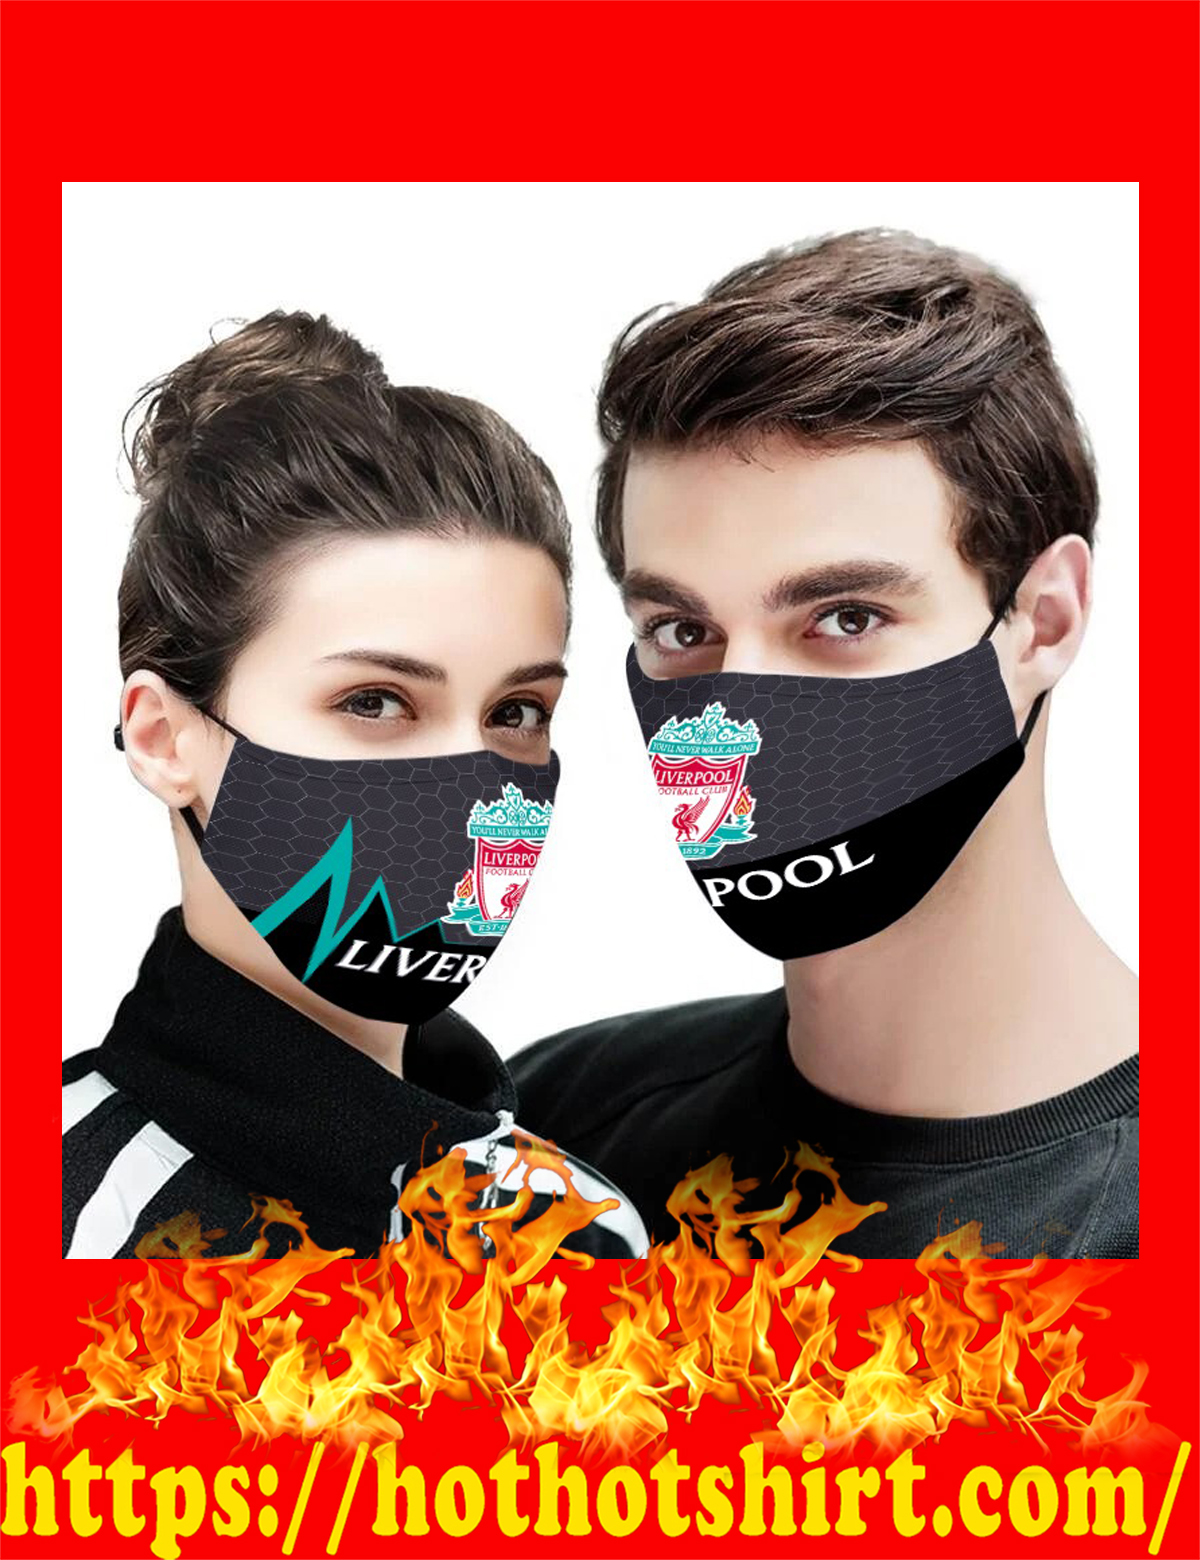 Liverpool face mask-detail